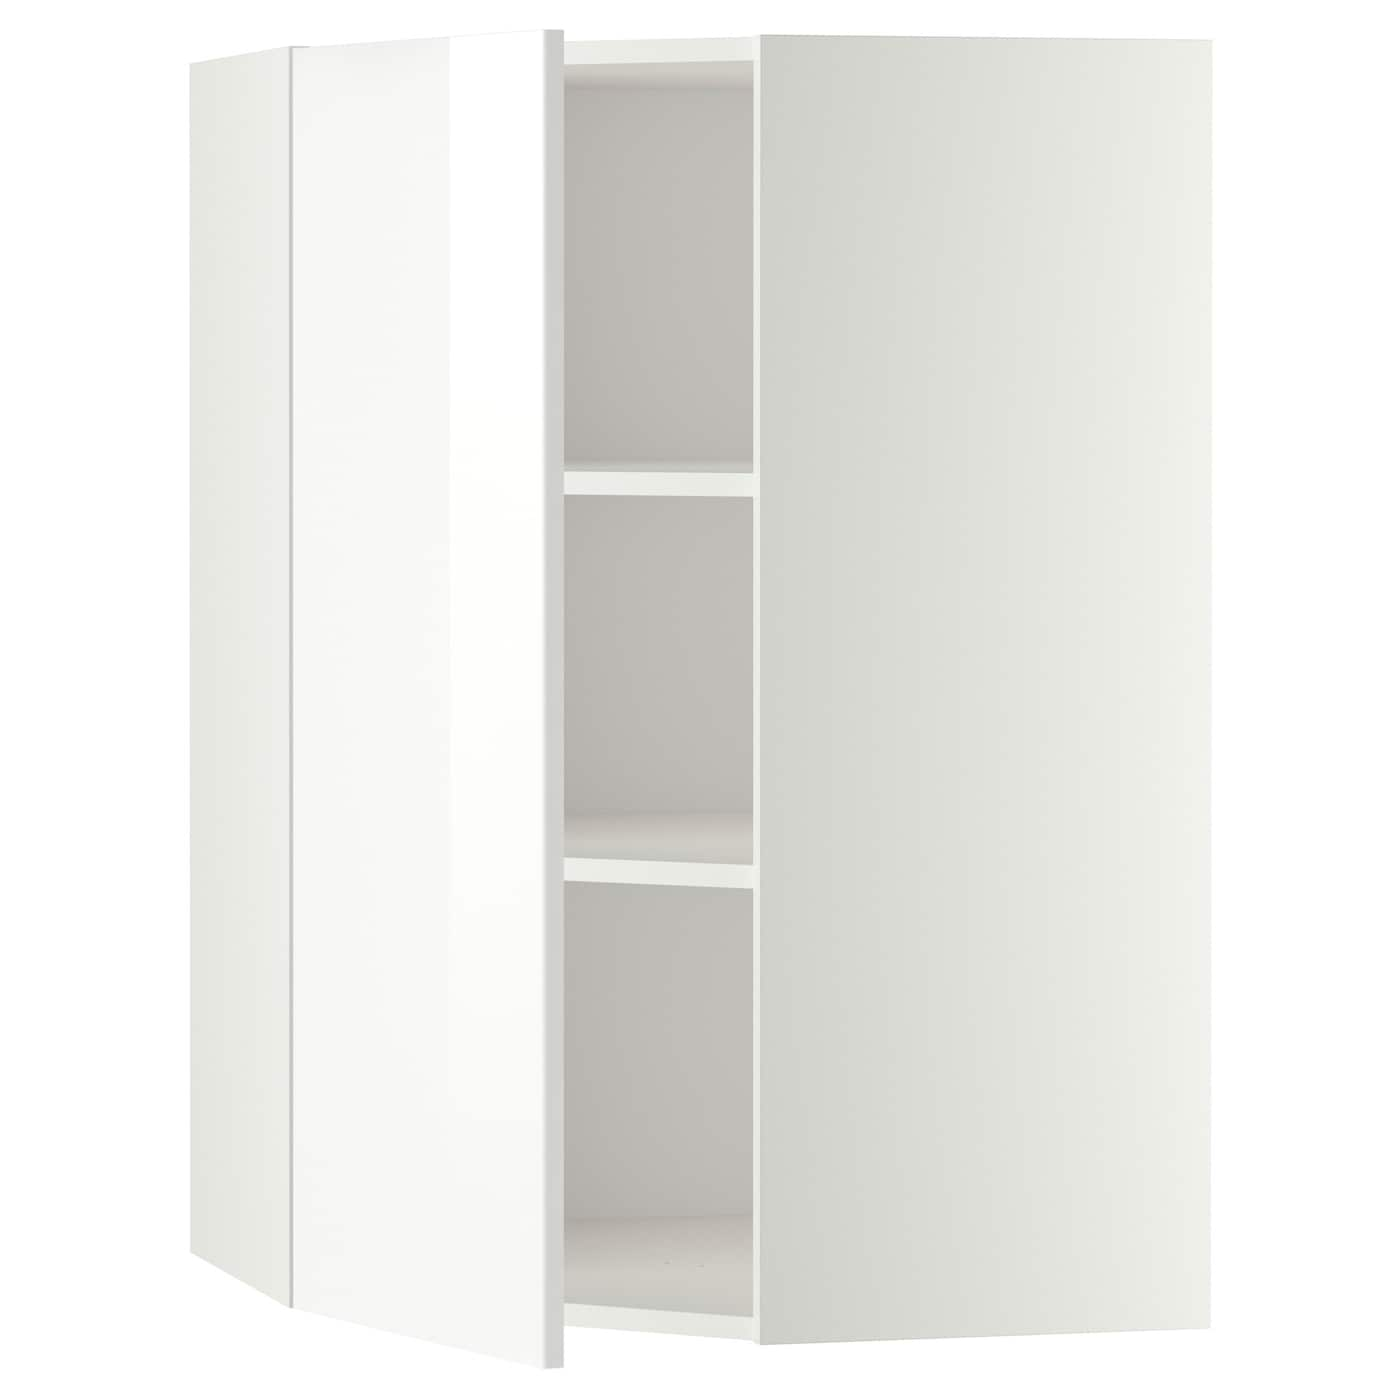 corner wall cabinet with shelves white ringhult white 68x100 cm ikea